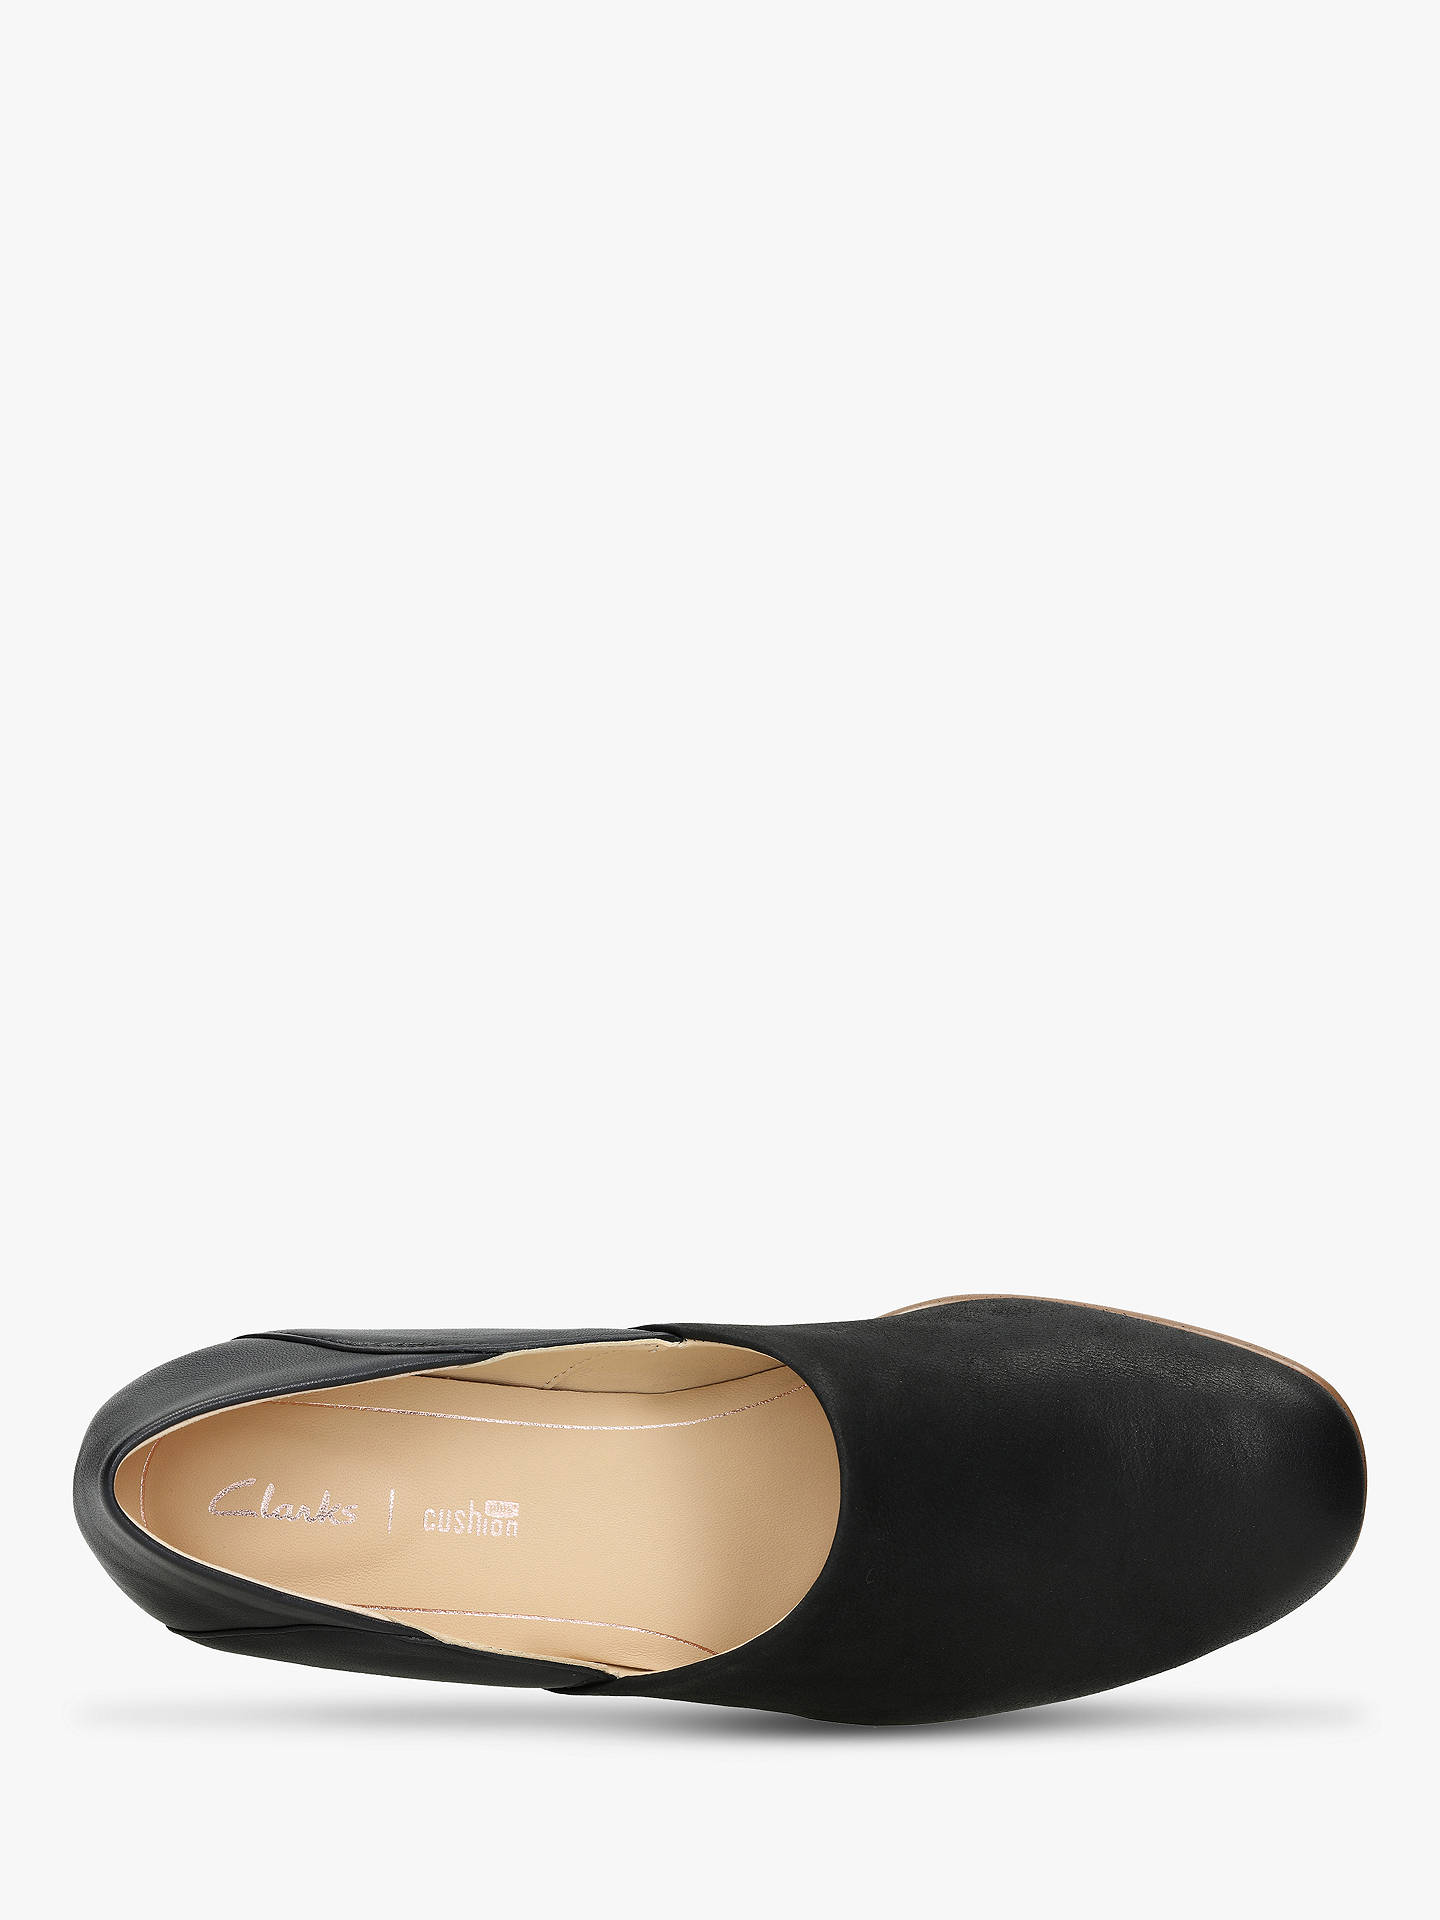 look good shoes sale purchase newest outlet Clarks Pure Tone Leather Flats, Black